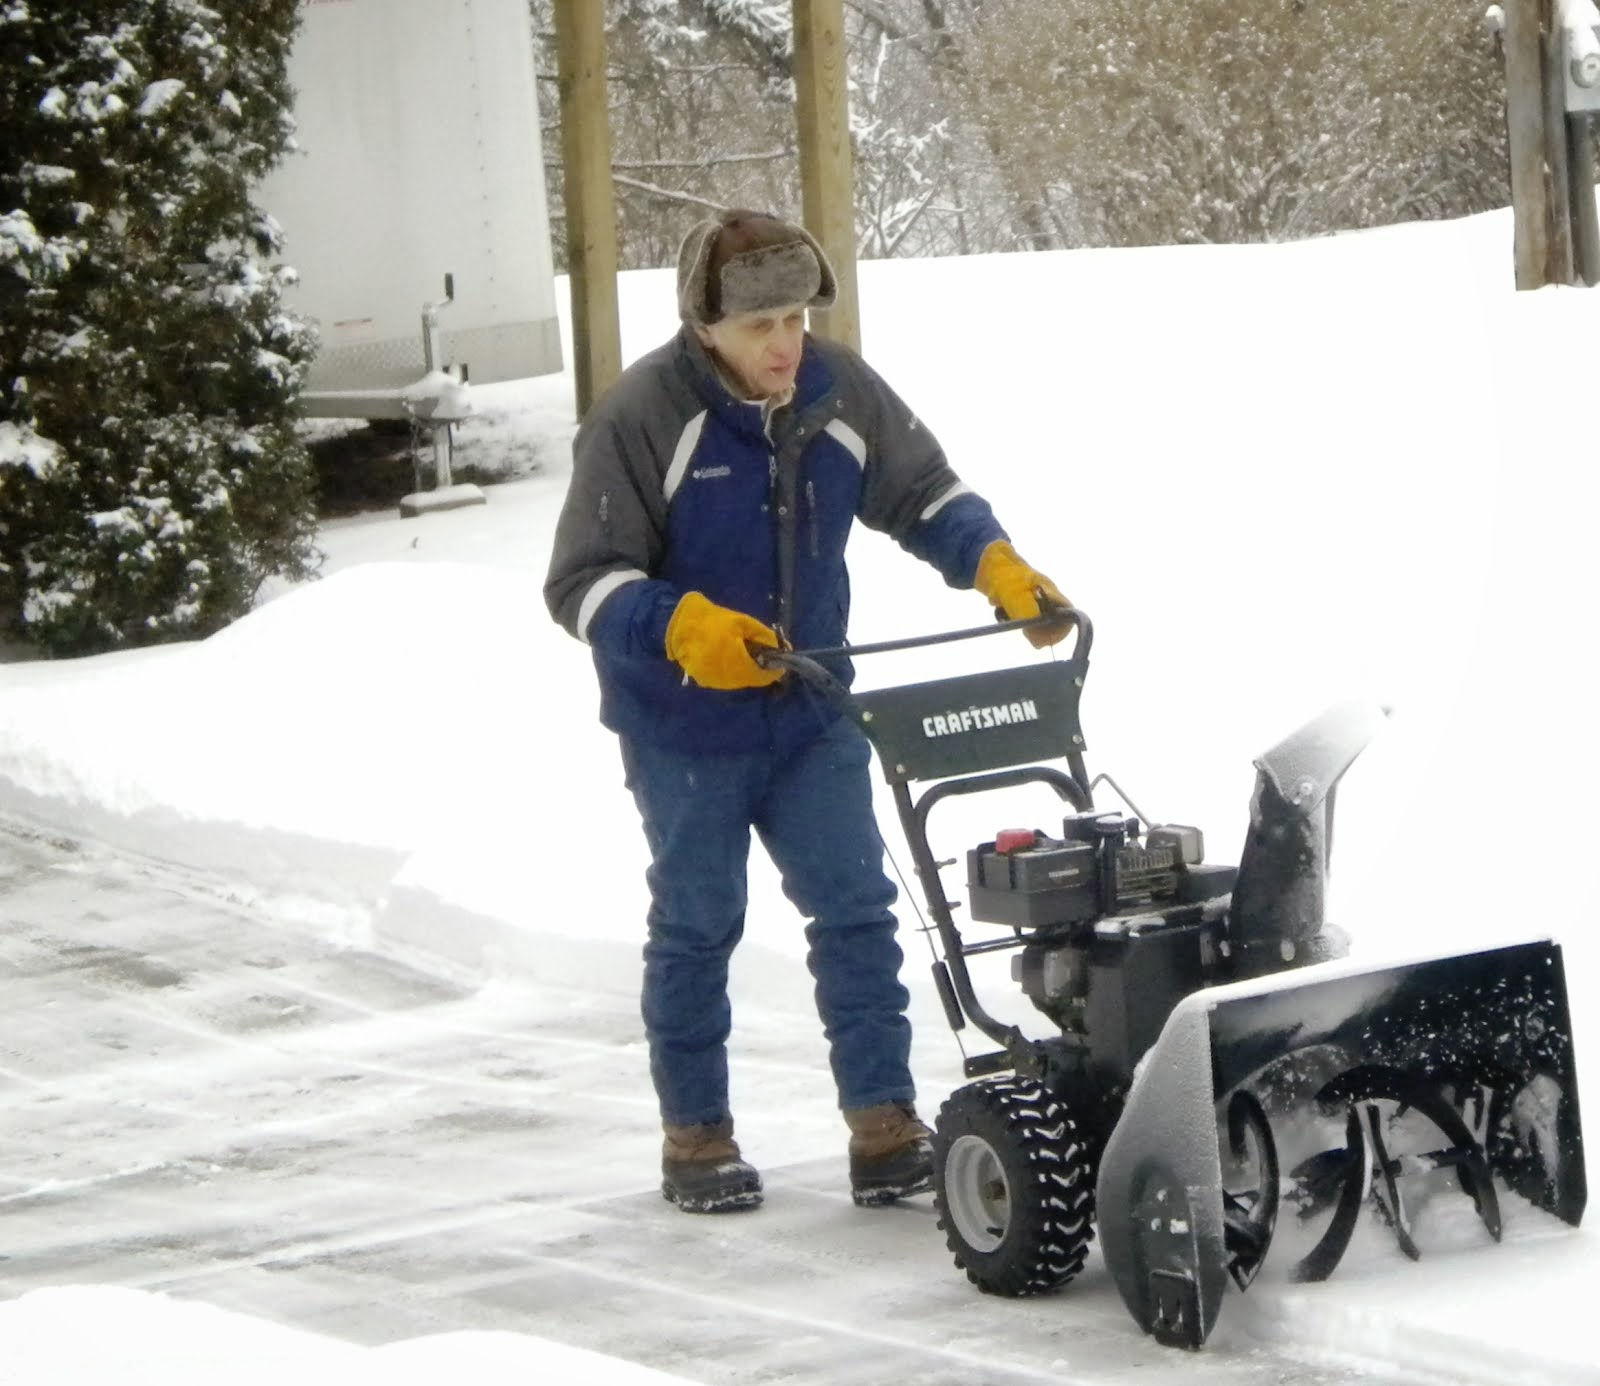 Snow blower by Jerry at work